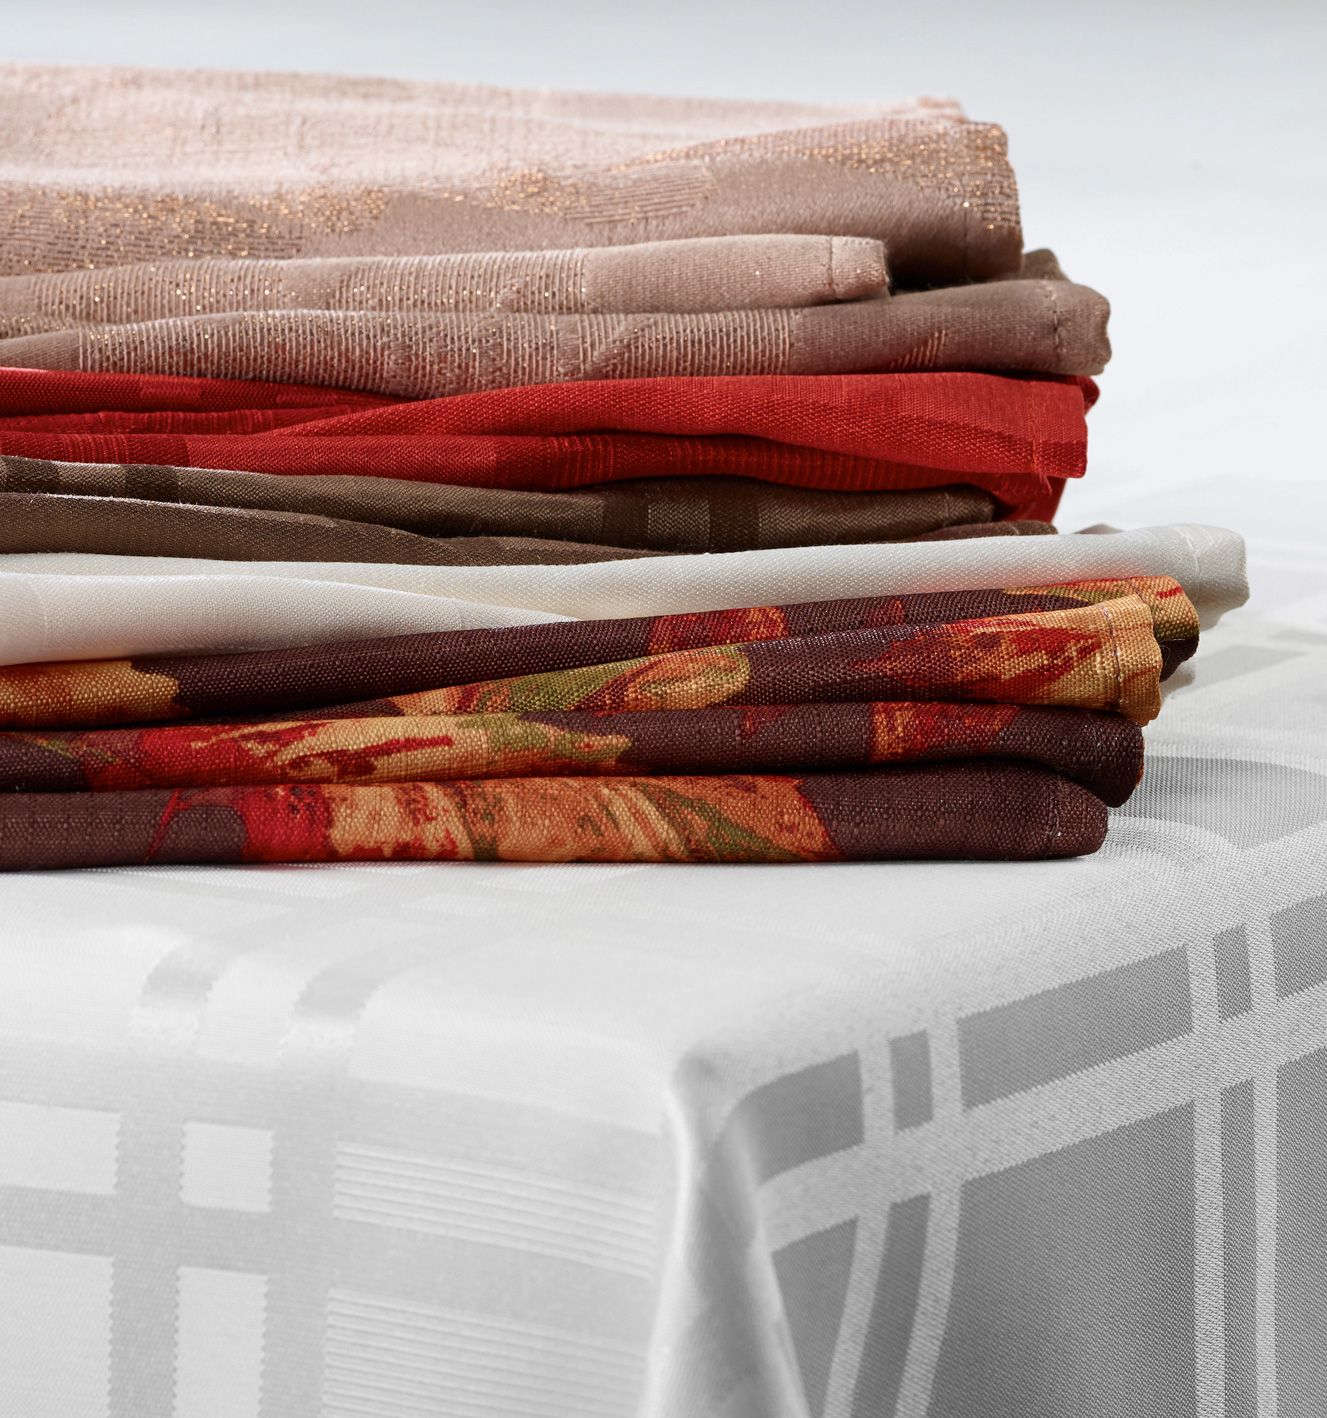 Mix and match napkins with your tablecloth for any event